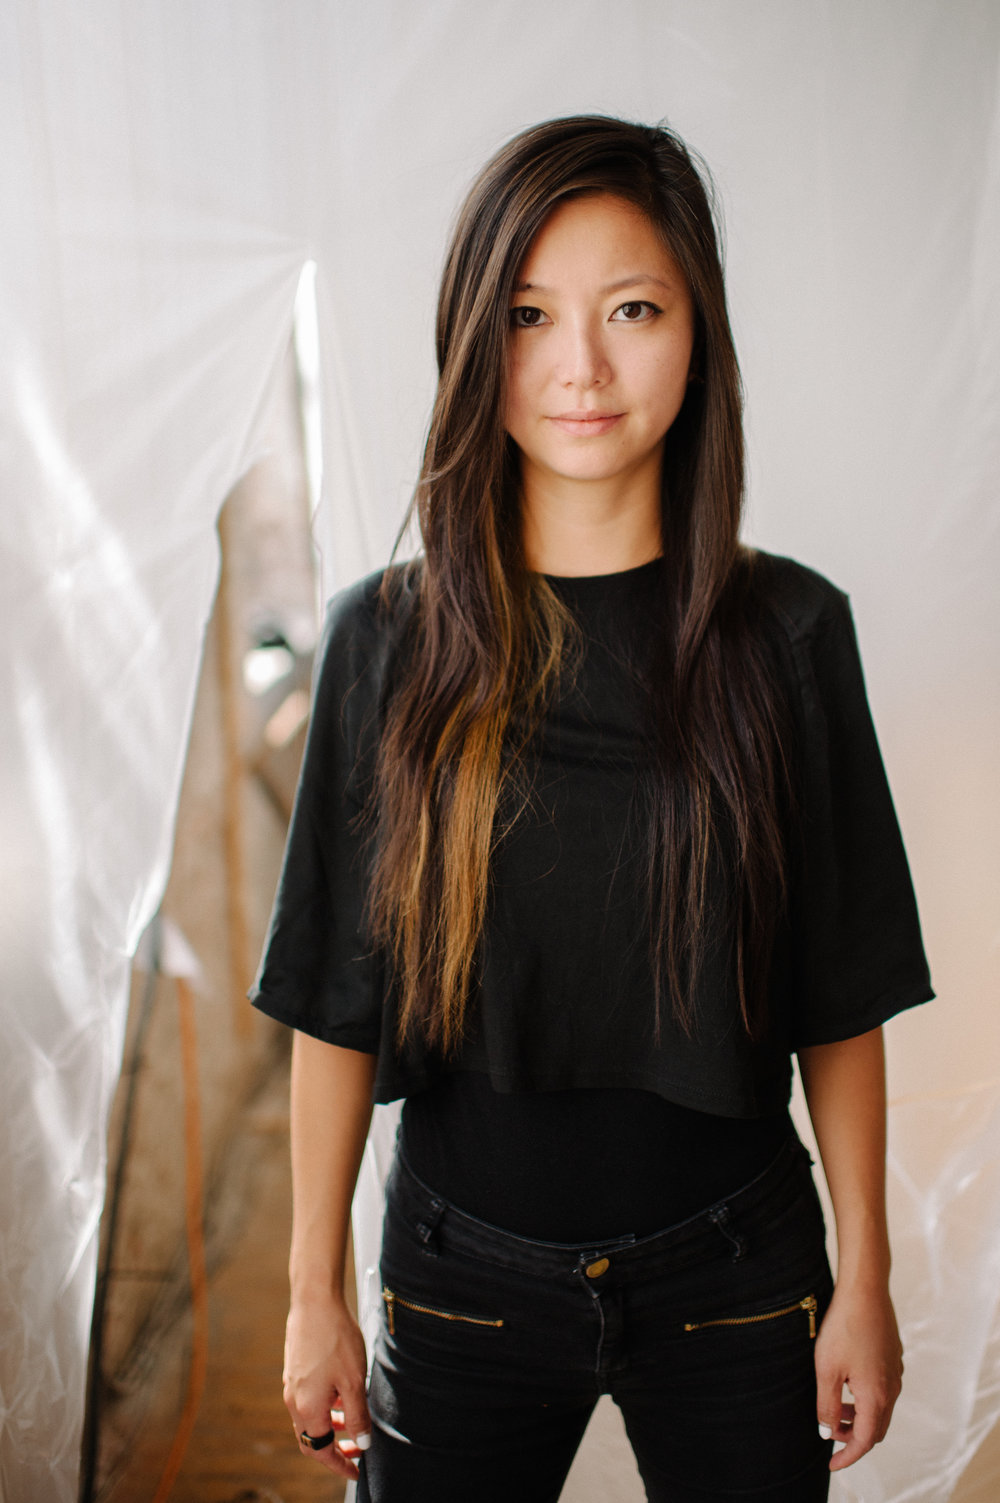 Vicky Chow (photo c/o Kaitlin Jane)